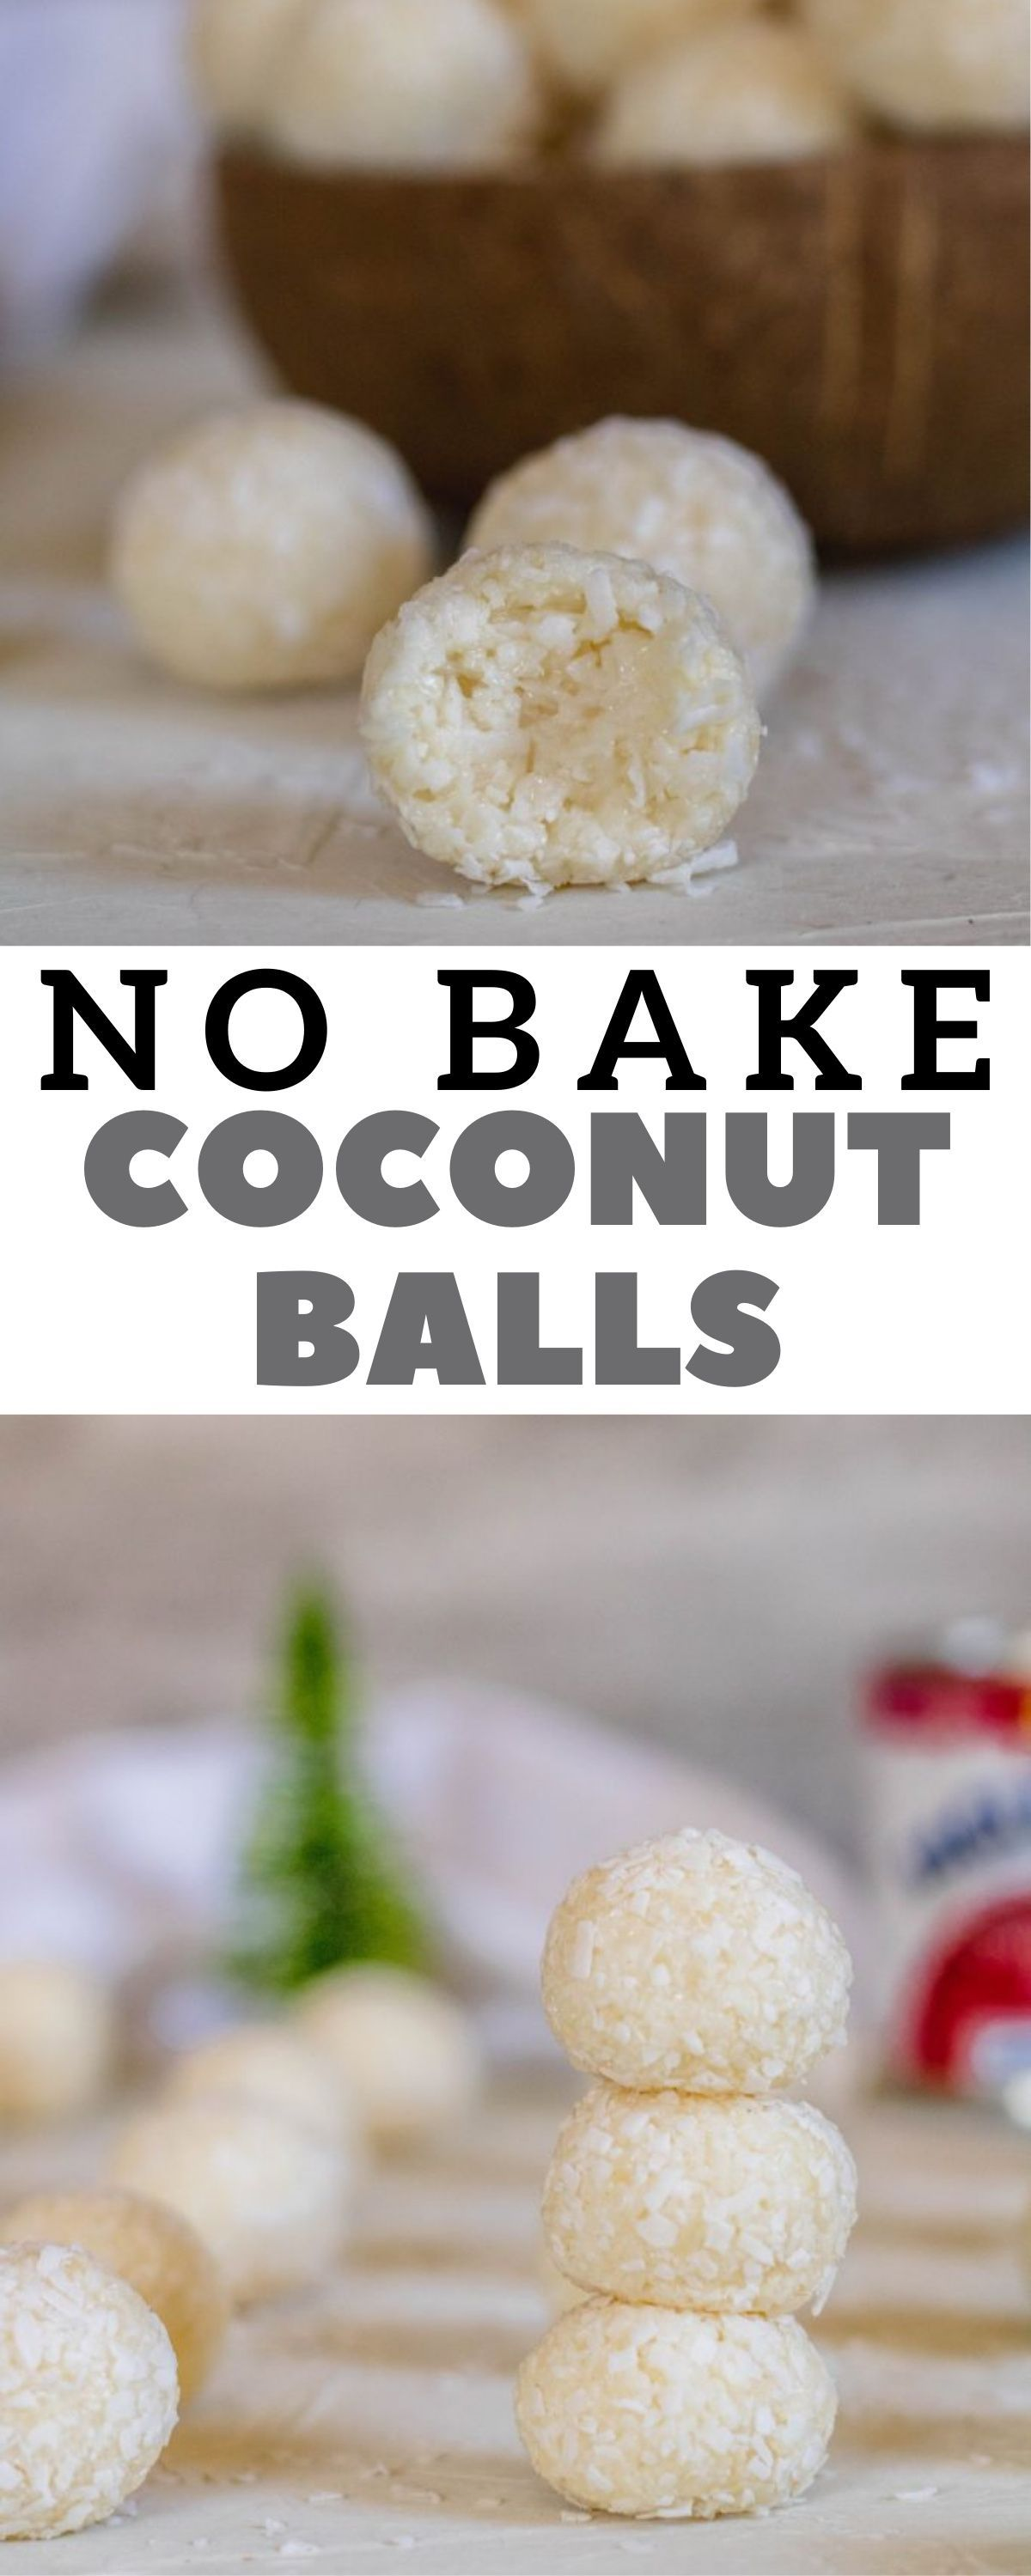 2 Ingredient No Bake Coconut Balls Lifestyle Of A Foodie Recipe Holiday Favorite Recipes Best Dessert Recipe Ever Dessert Recipes Easy